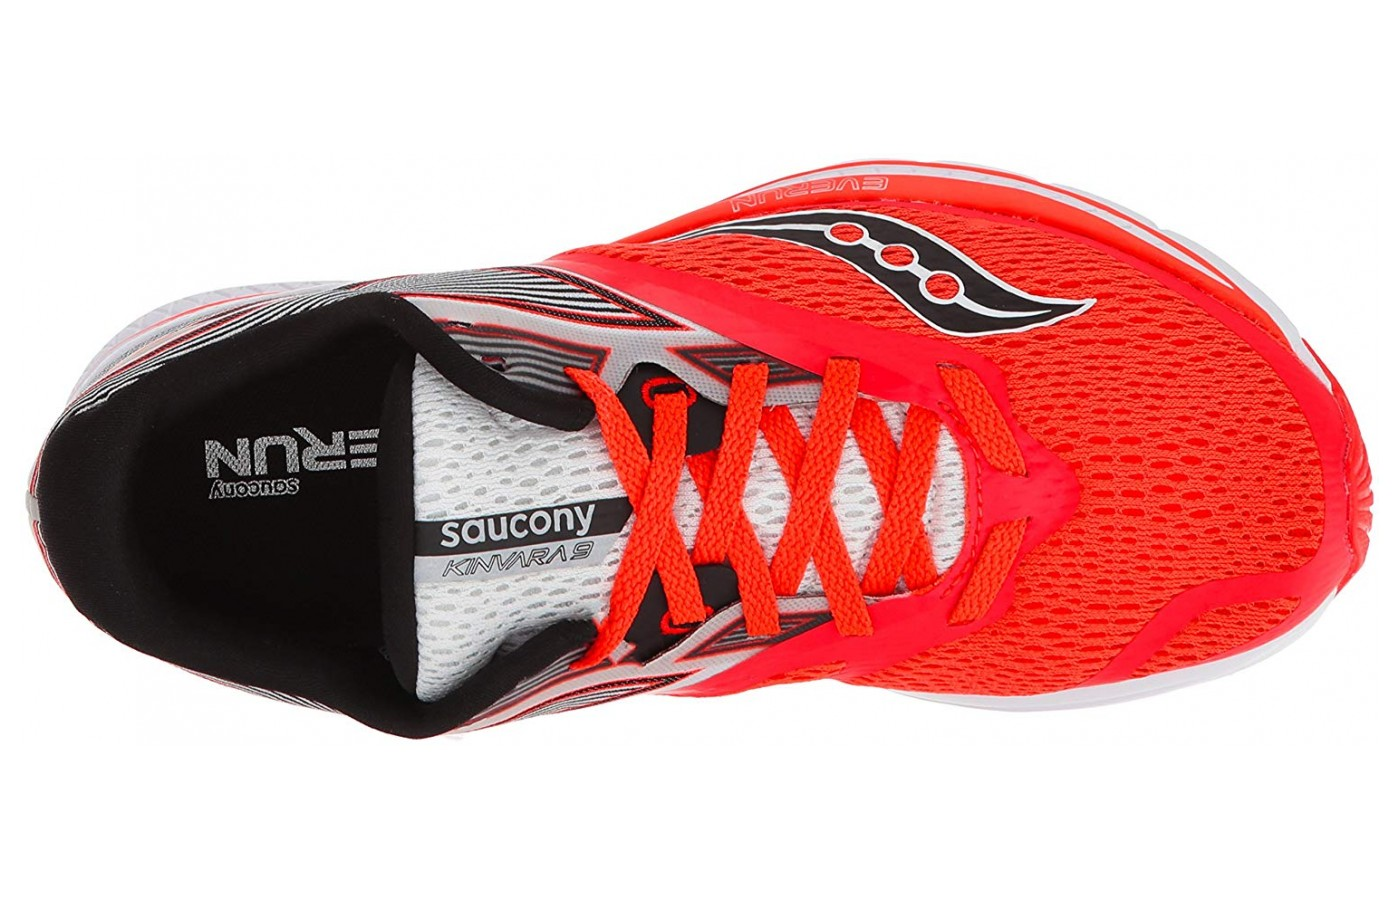 Saucony Kinvara 9 inner shoe features the Eva foam support.